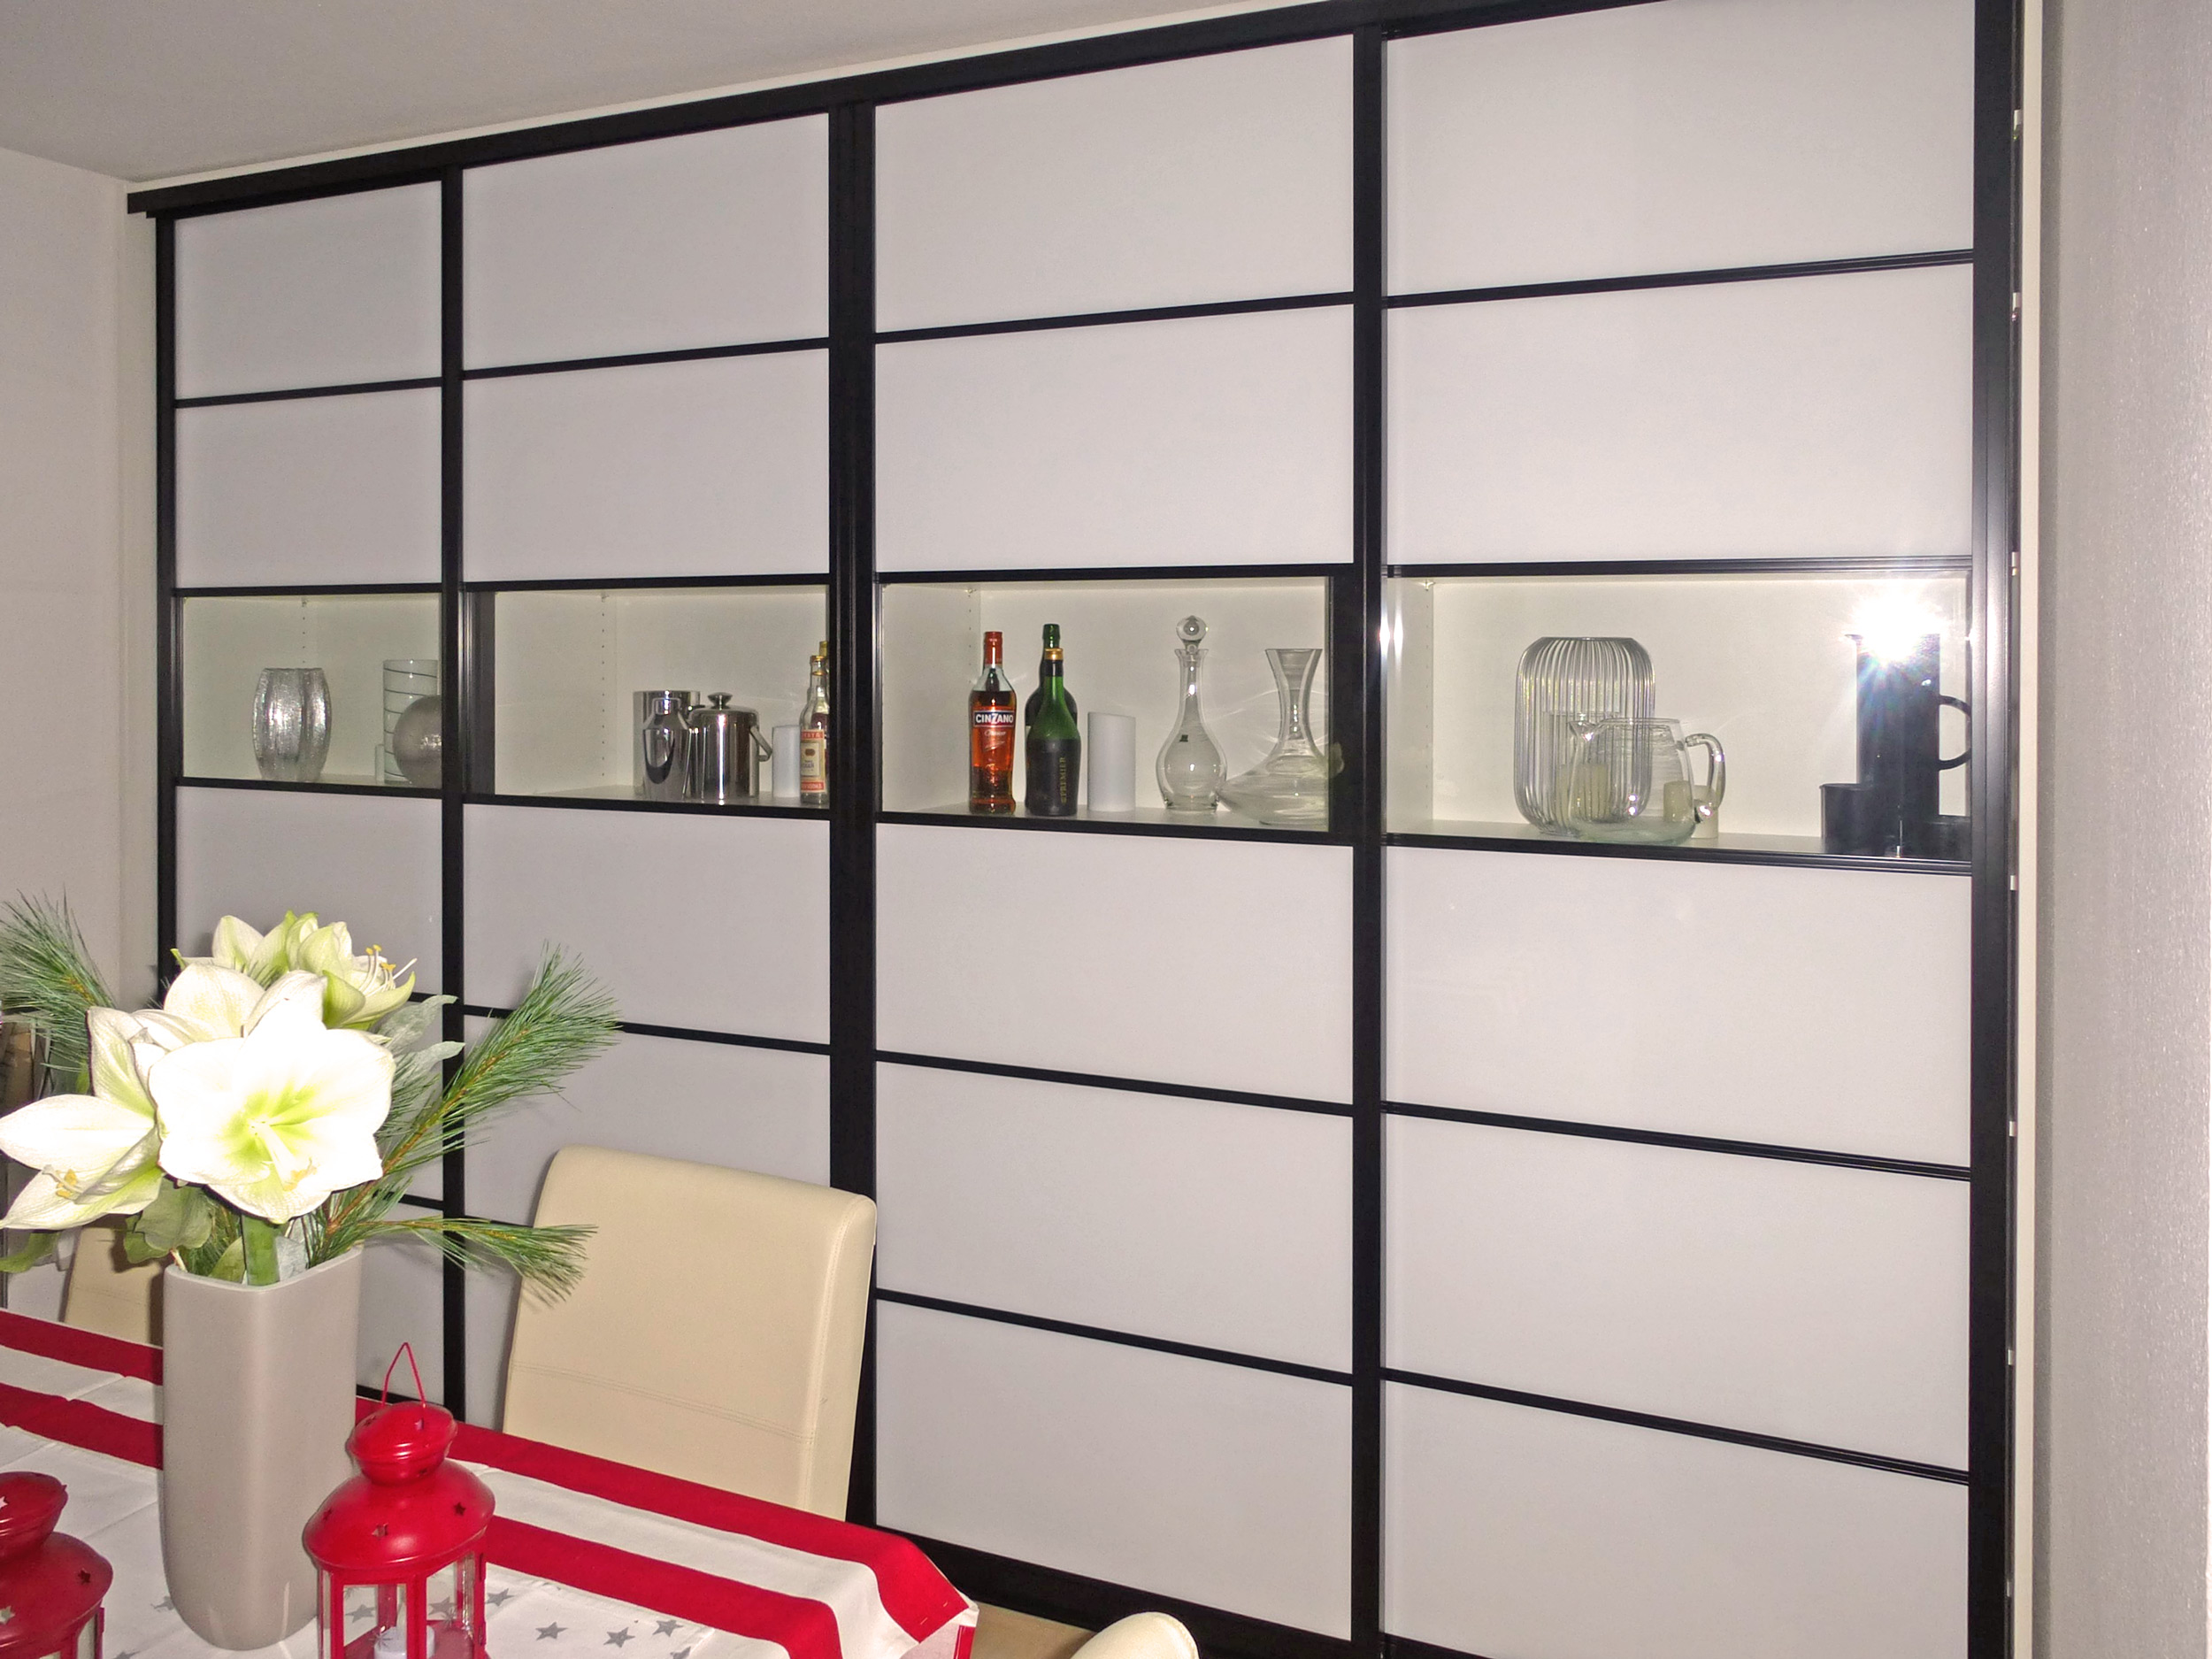 schrank nach ma schiebet ren nach ma schiebet renschrank sideboards. Black Bedroom Furniture Sets. Home Design Ideas